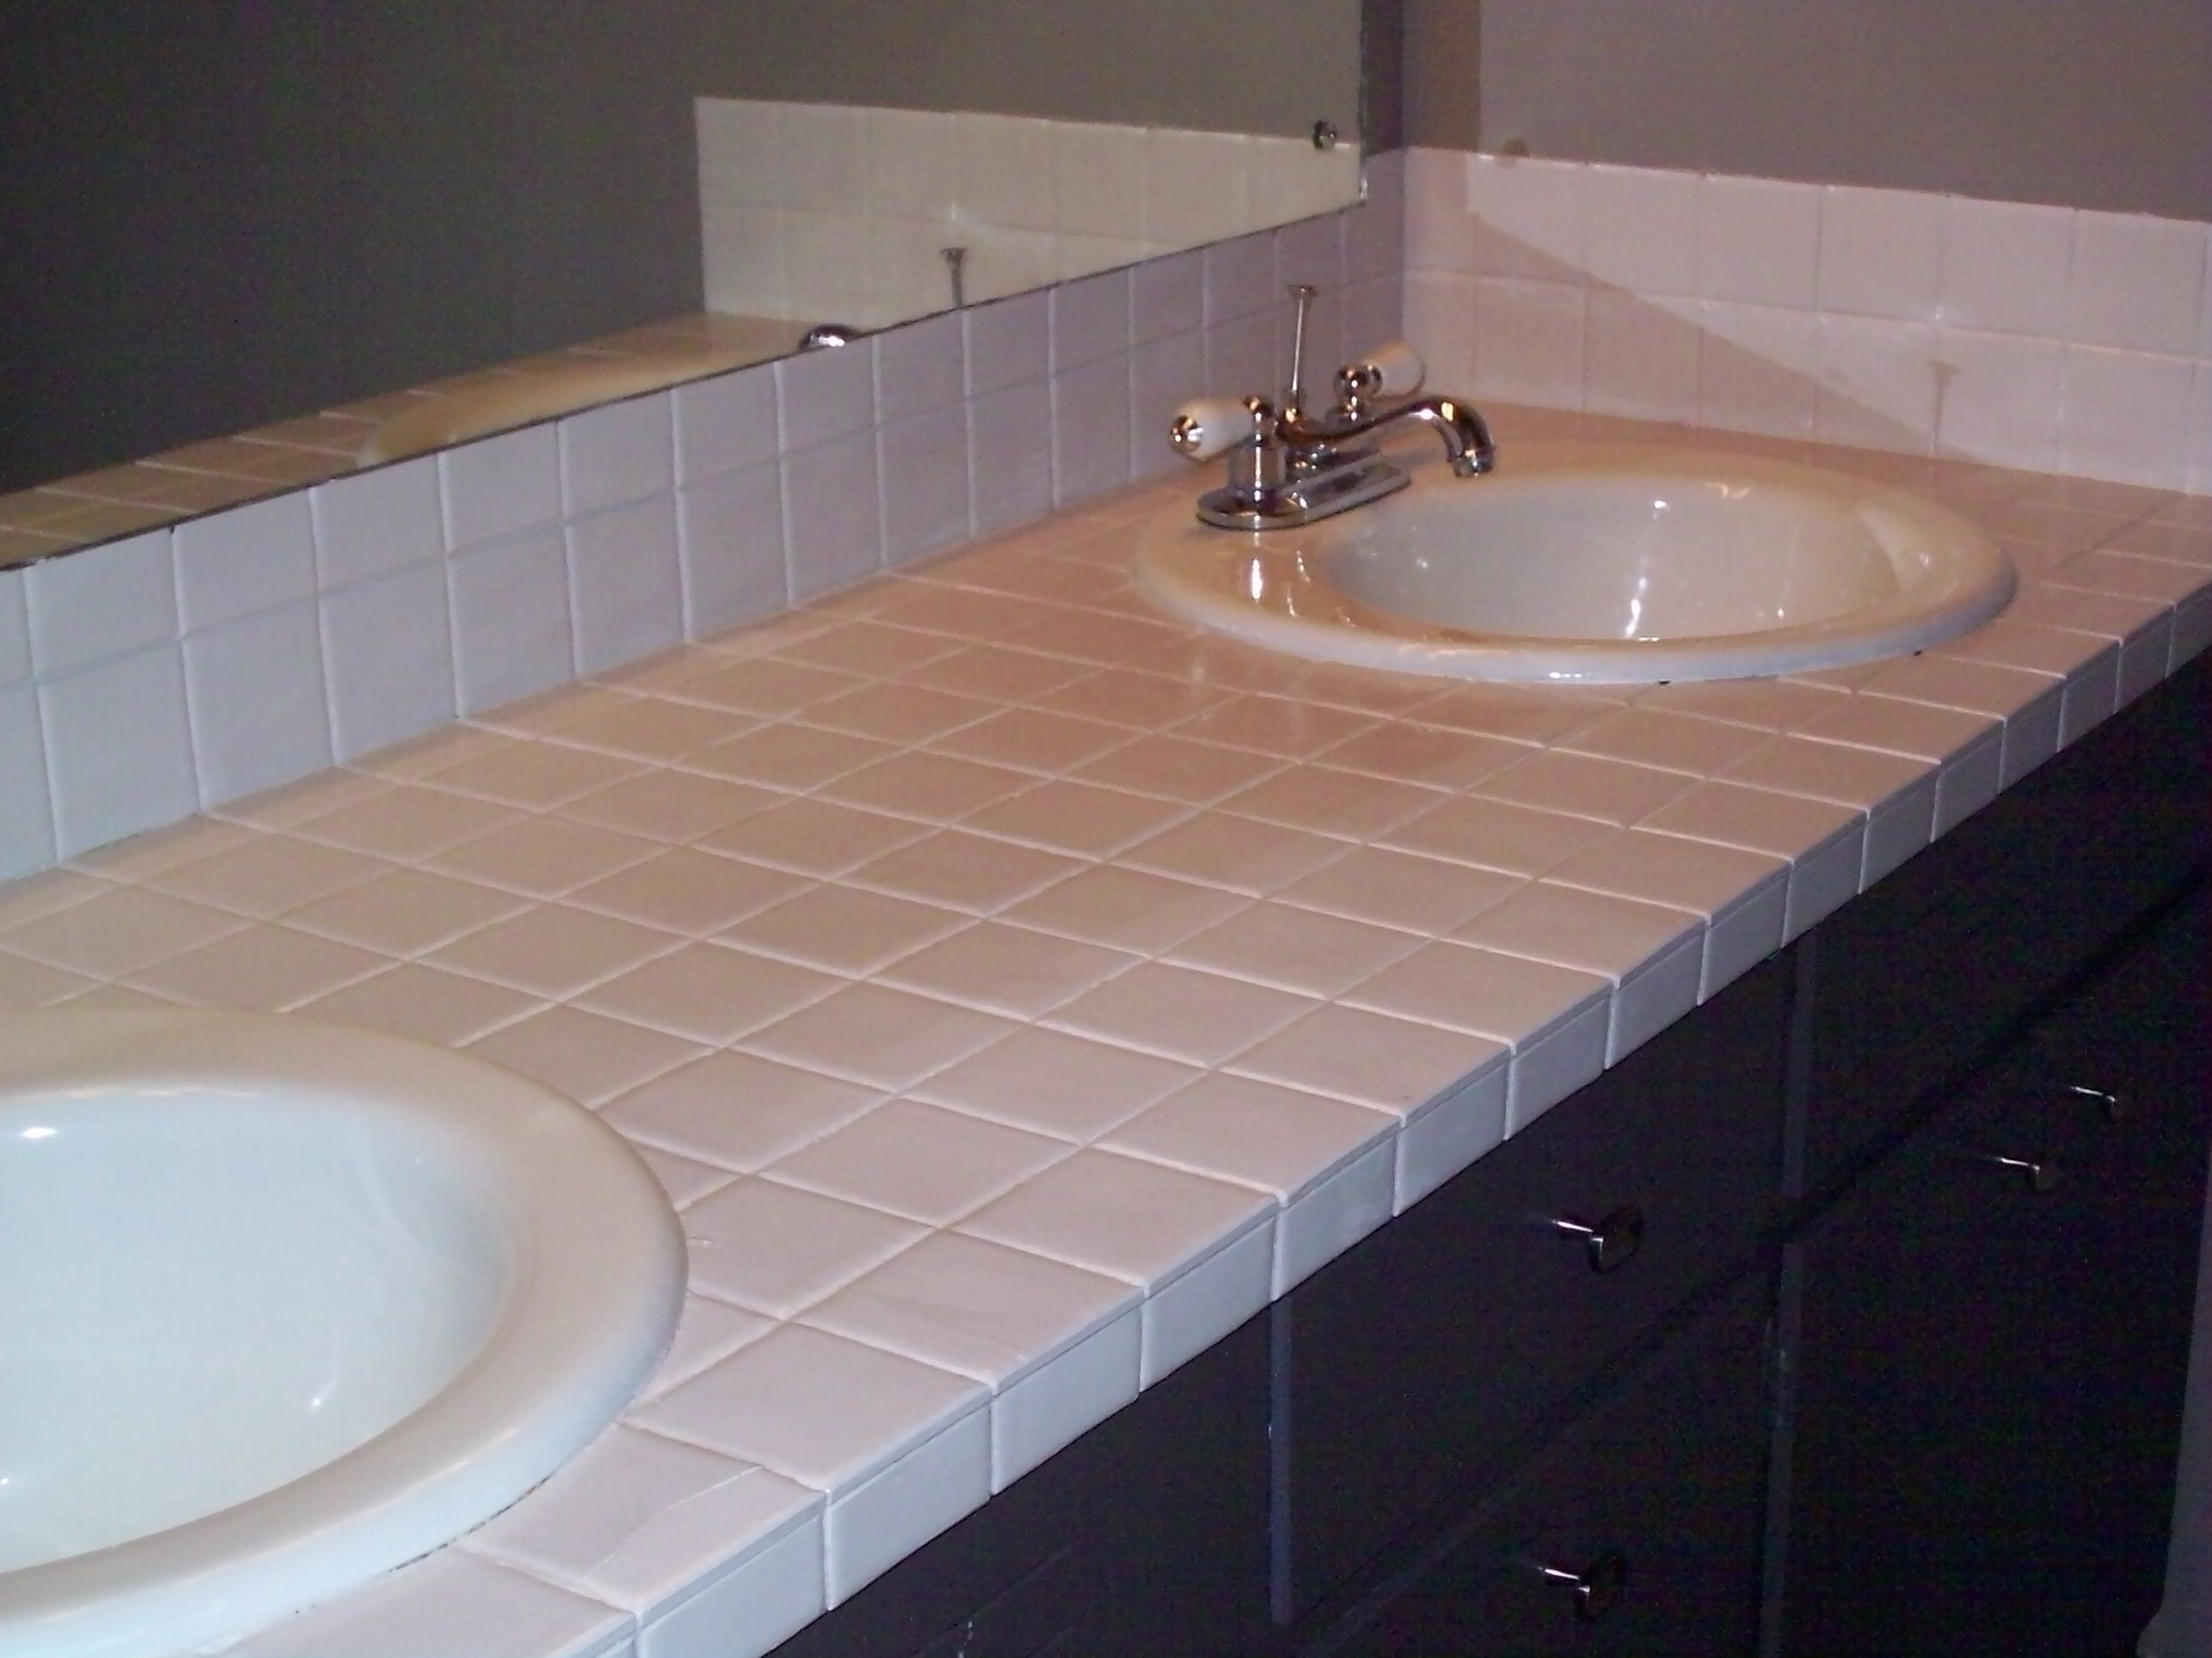 How to paint ceramic tile countertops home painting - Ceramic tile bathroom countertops ...